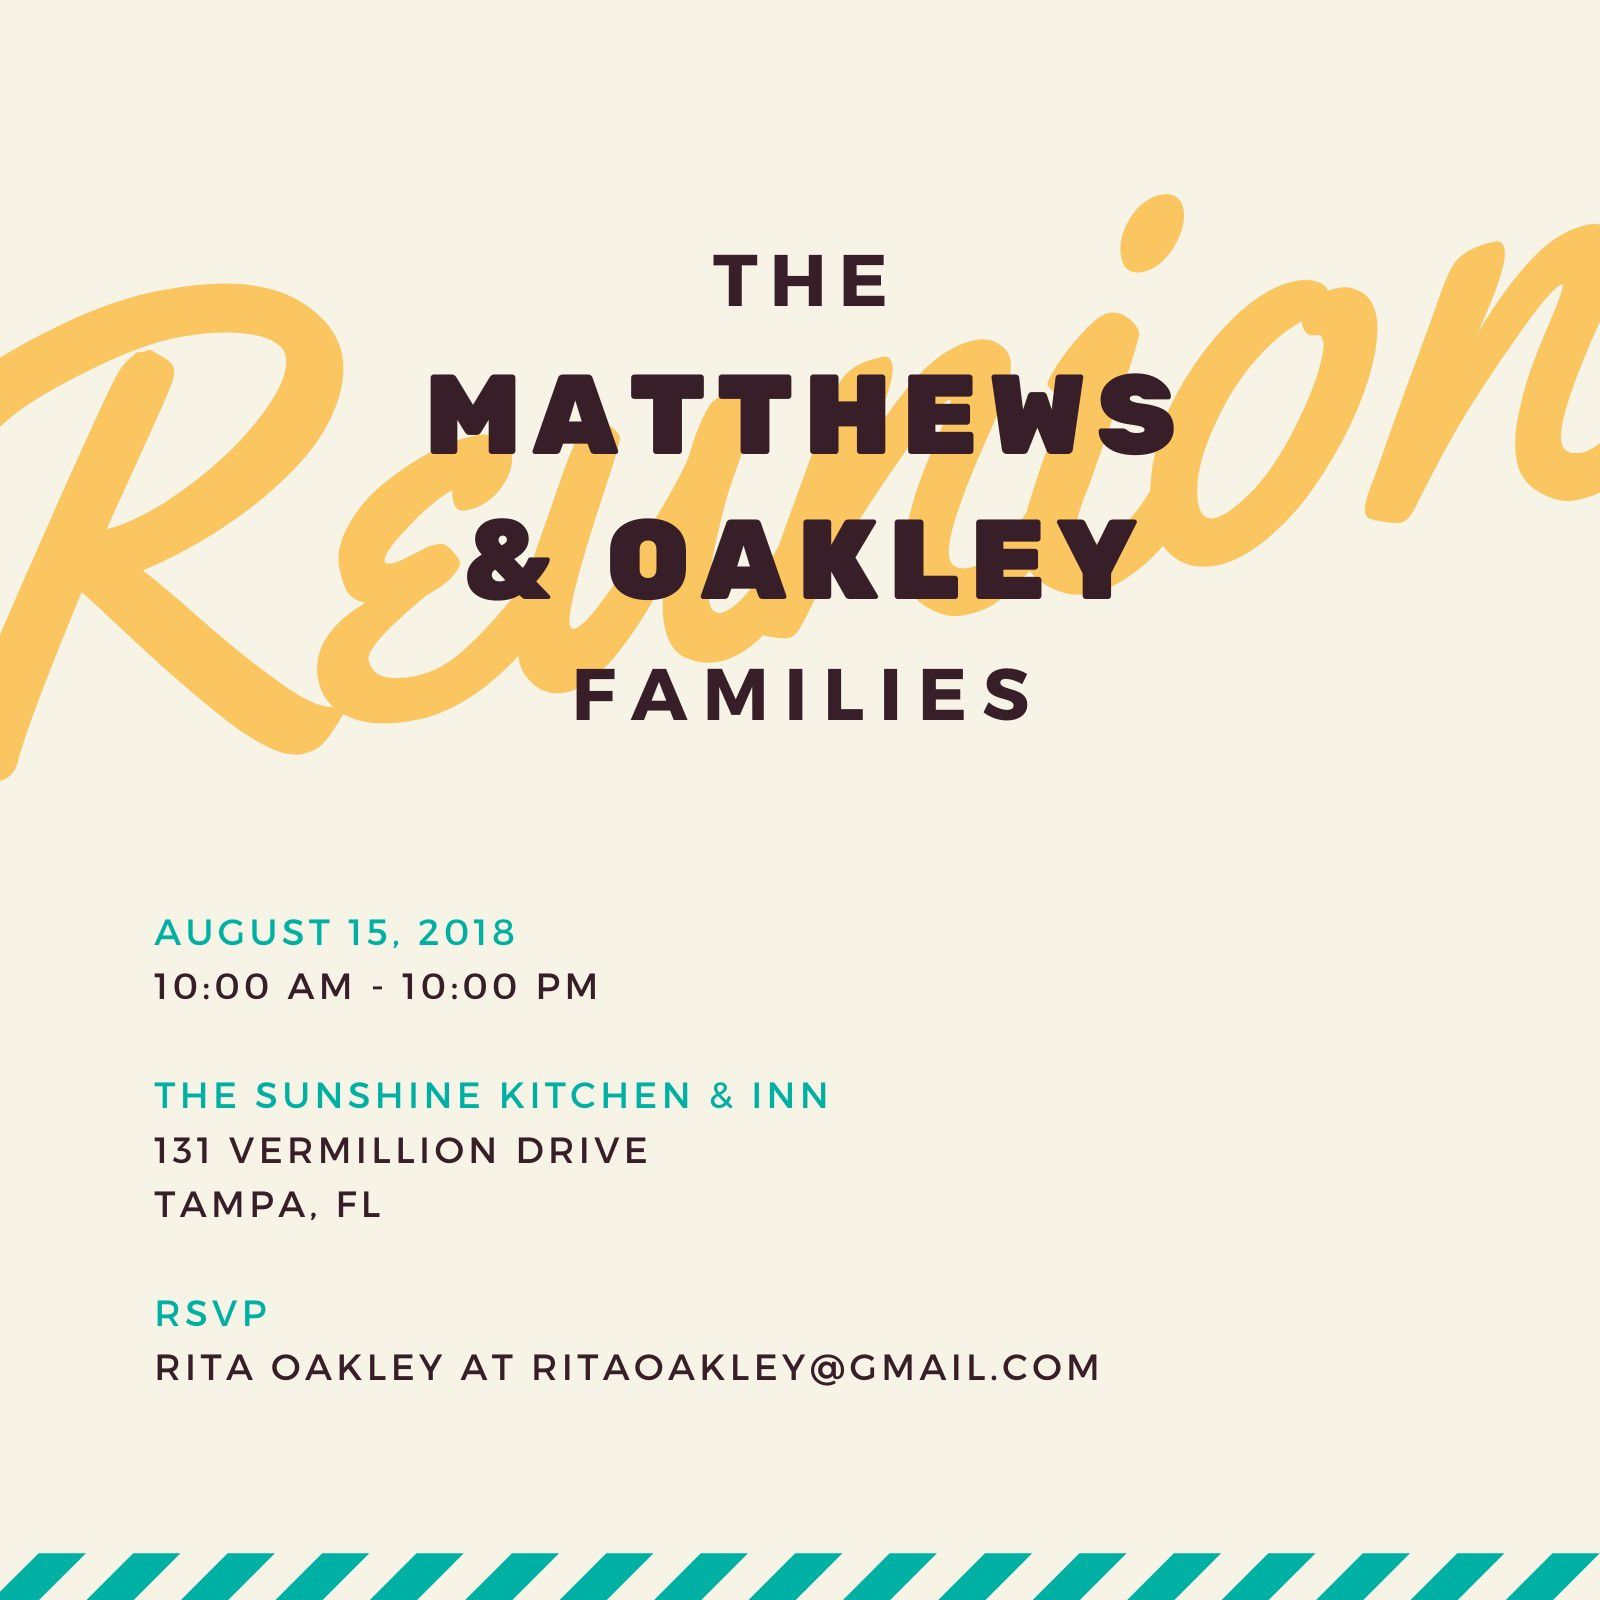 008 Incredible Family Reunion Invitation Template Free Design  For Word OnlineFull